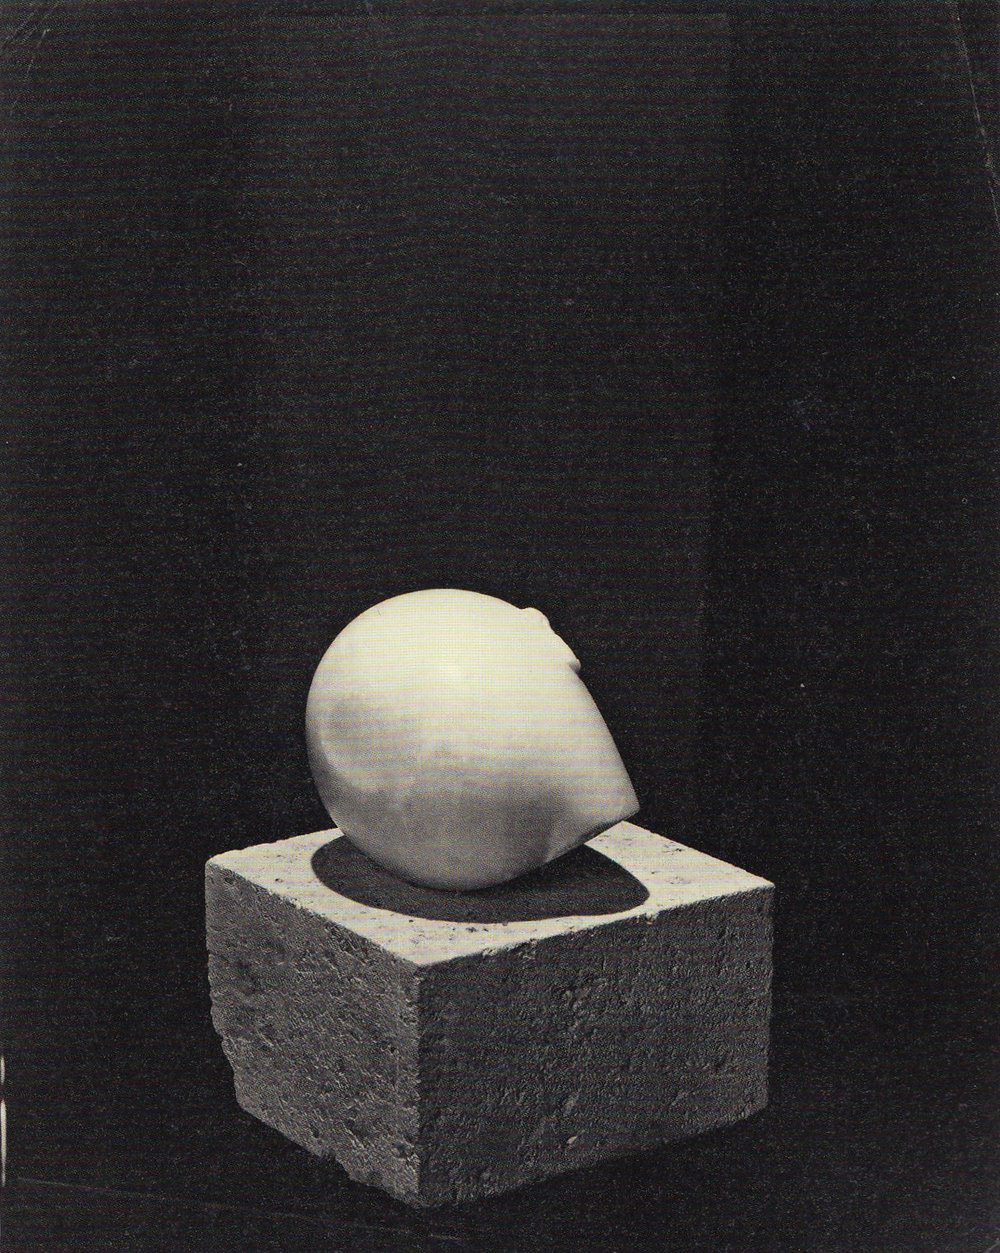 'Brancusi, Film, Photographie: Images Sans Fin' - BOOK